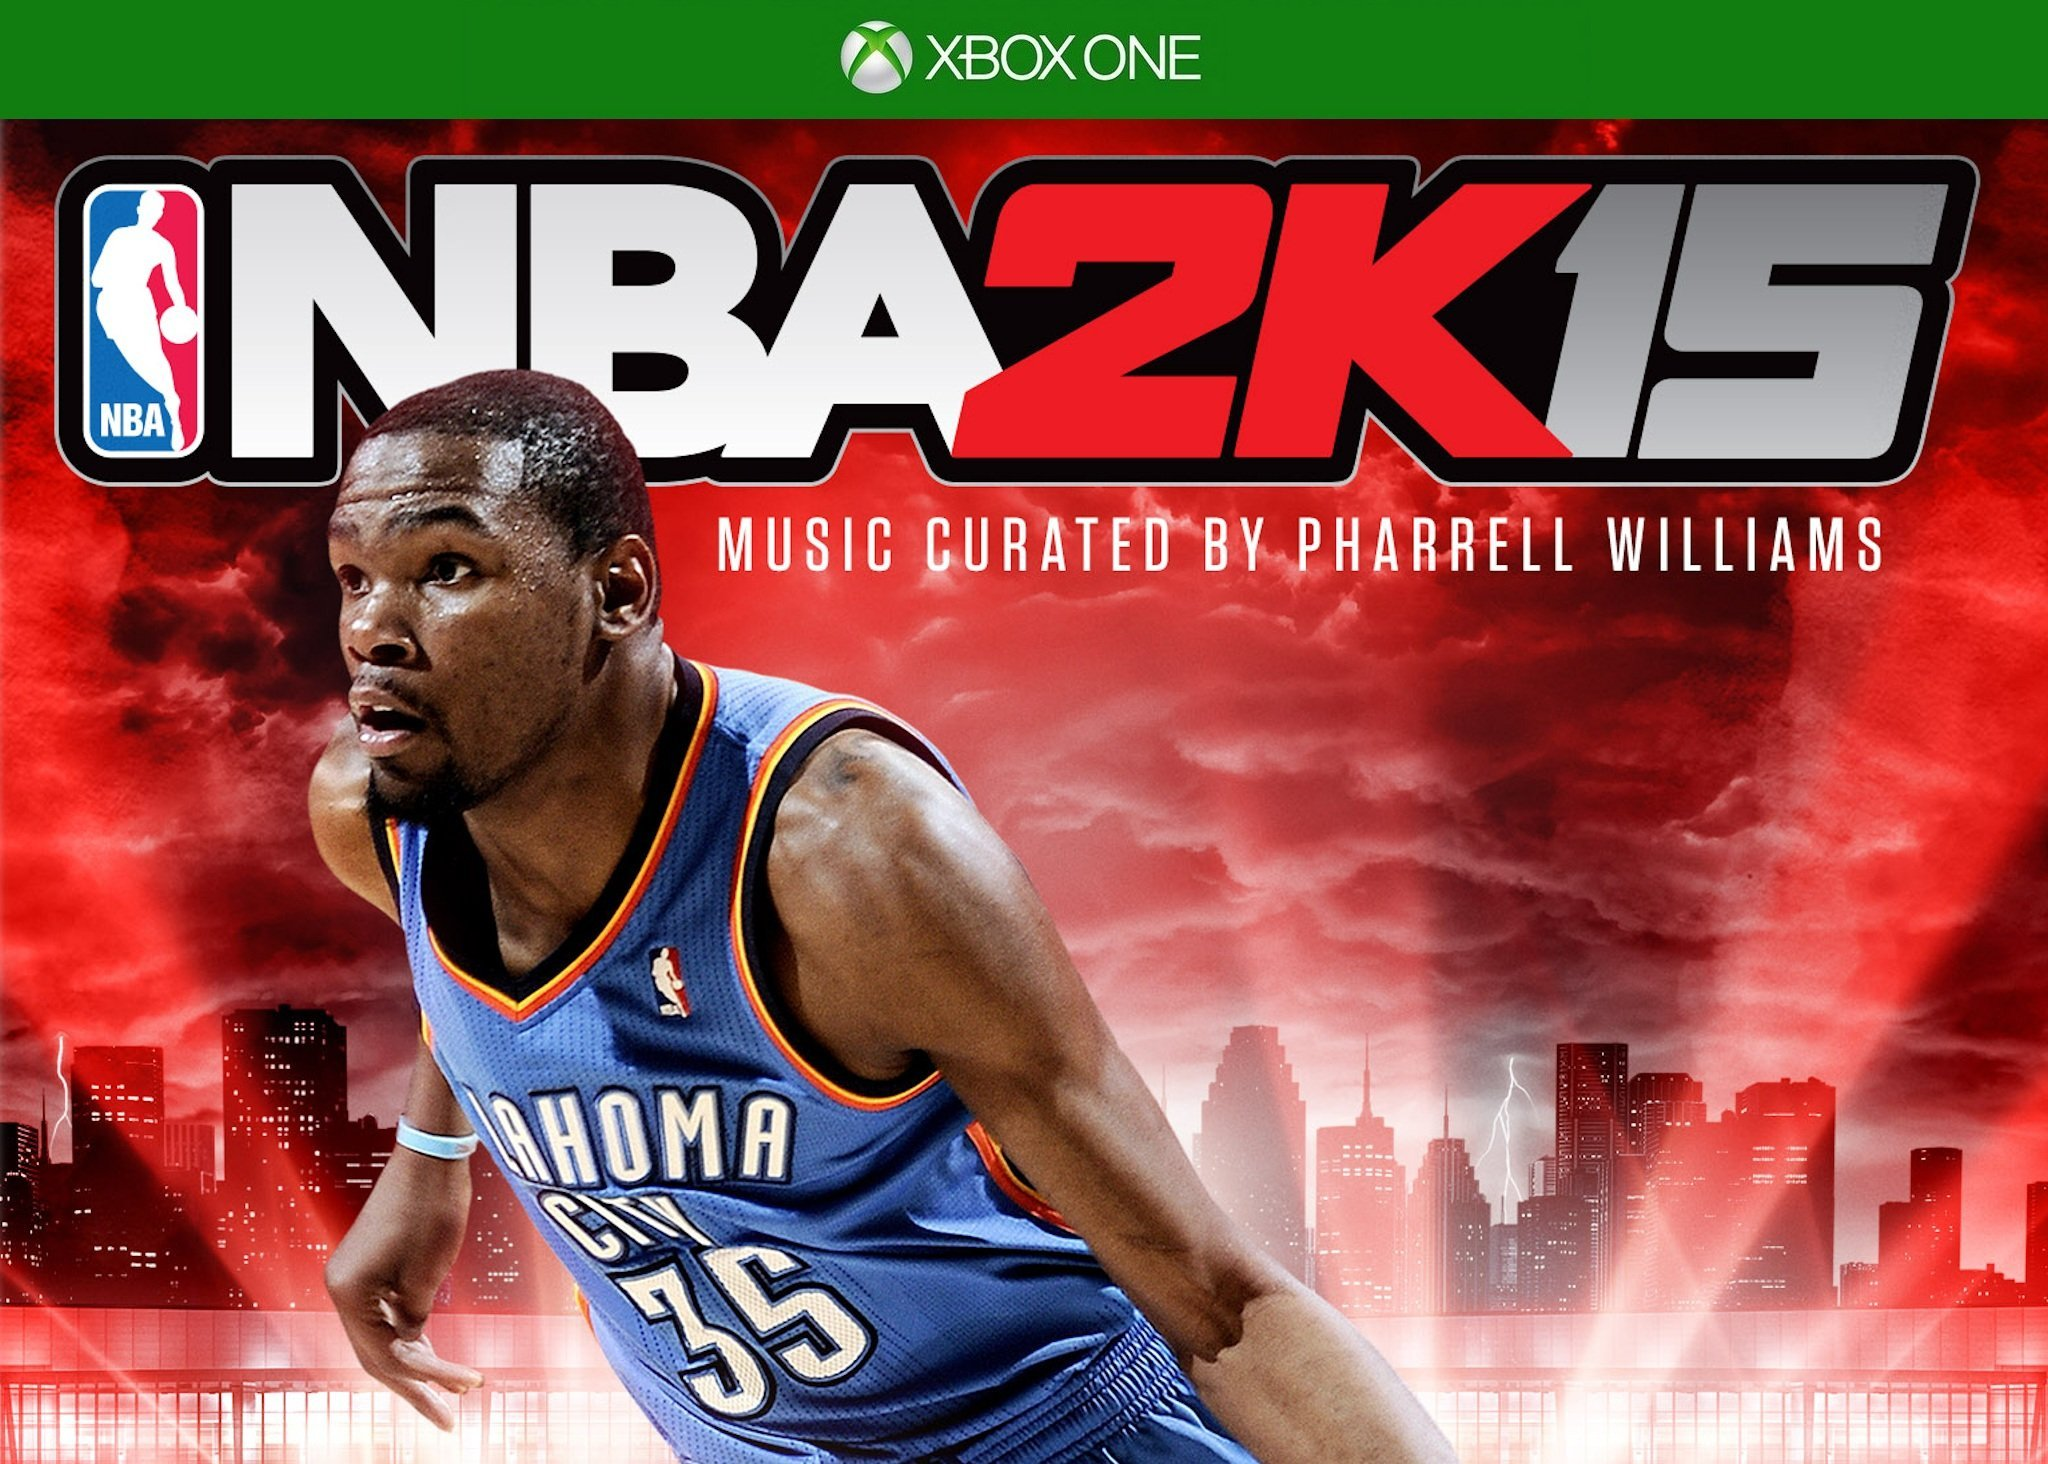 Nba 2k15 Review The Basketball Game To Beat On Xbox One